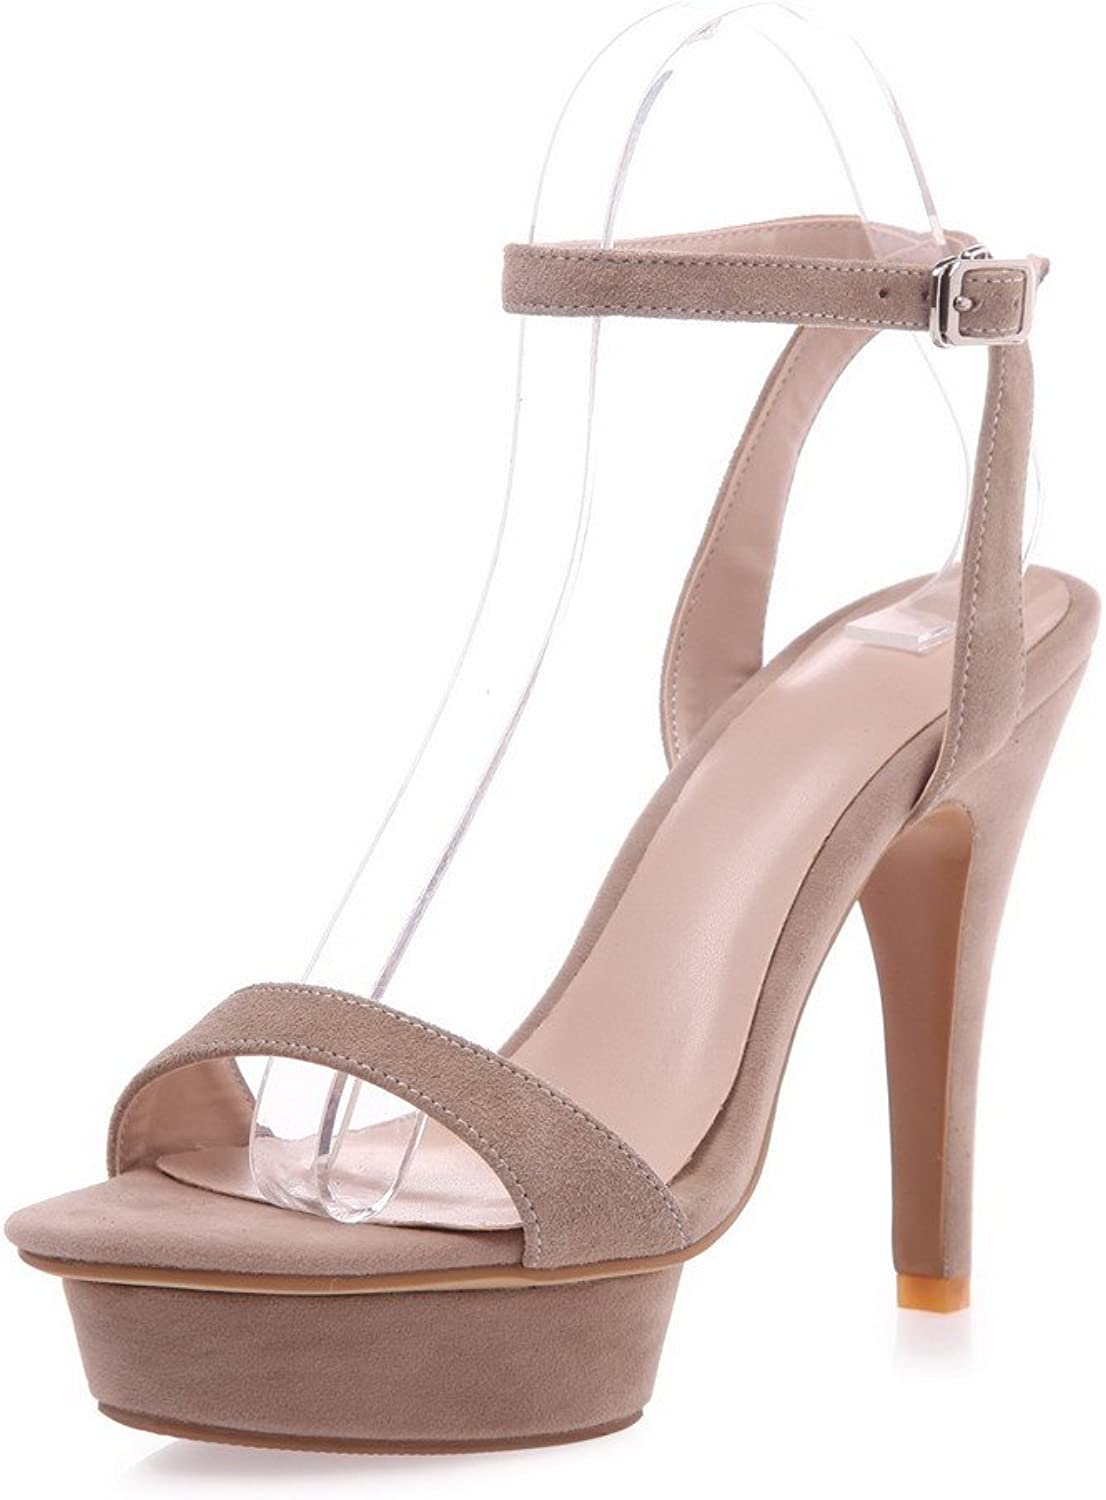 AmoonyFashion Women's Frosted Buckle Open-Toe High-Heels Solid Sandals